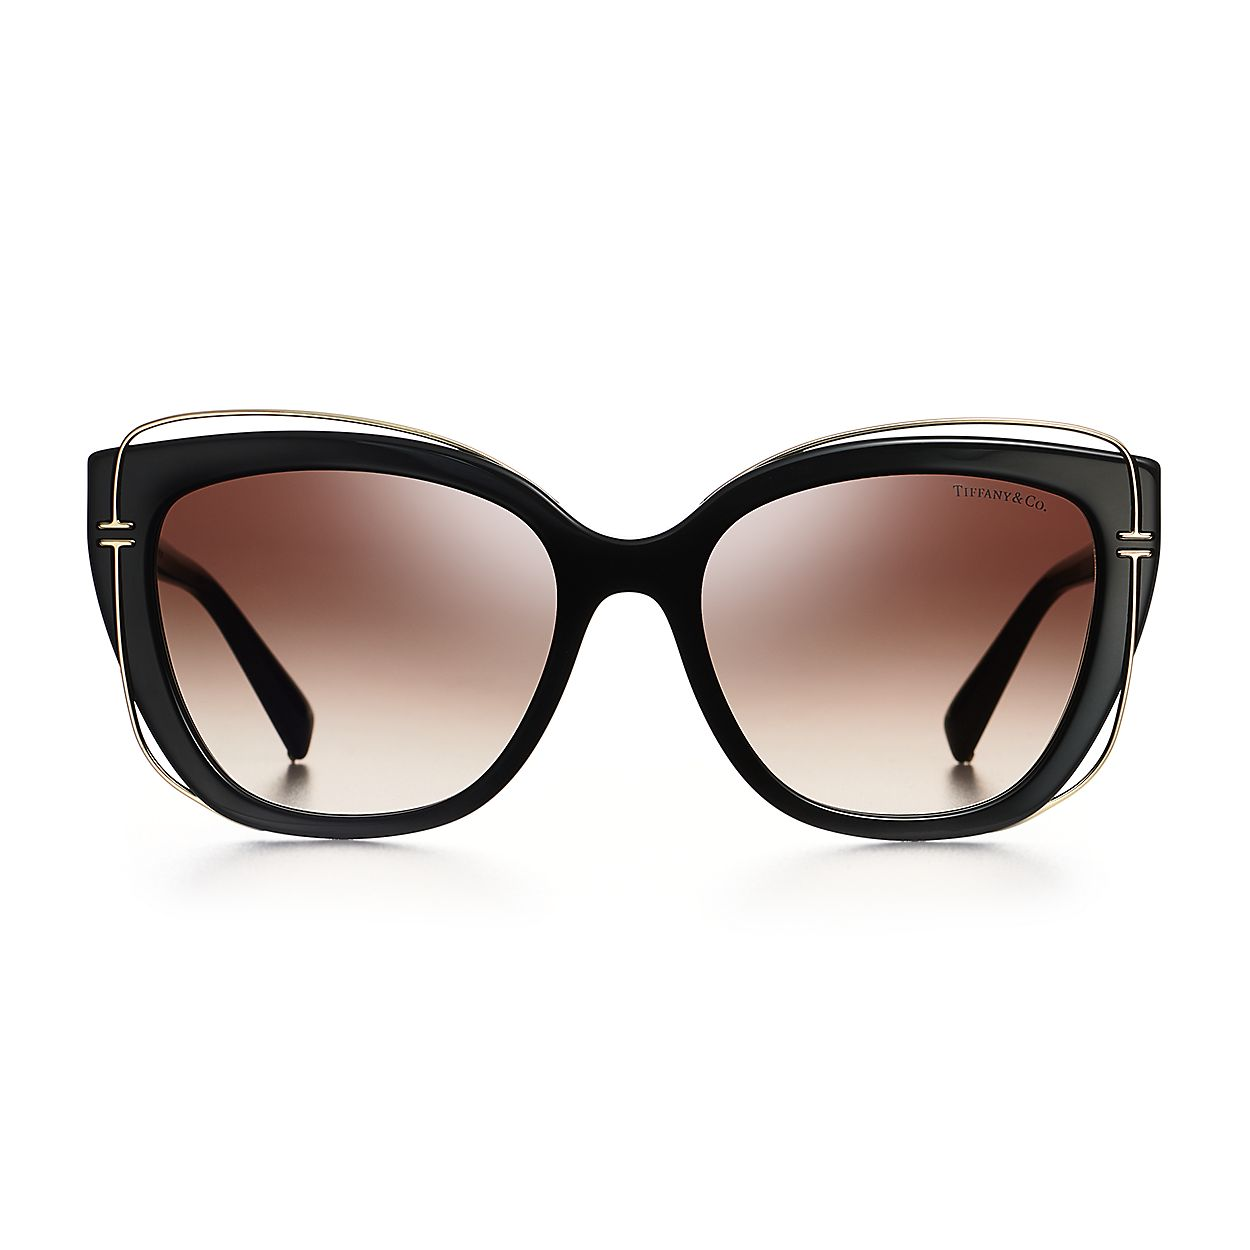 62965be95f Tiffany T round sunglasses in silver-colored metal.